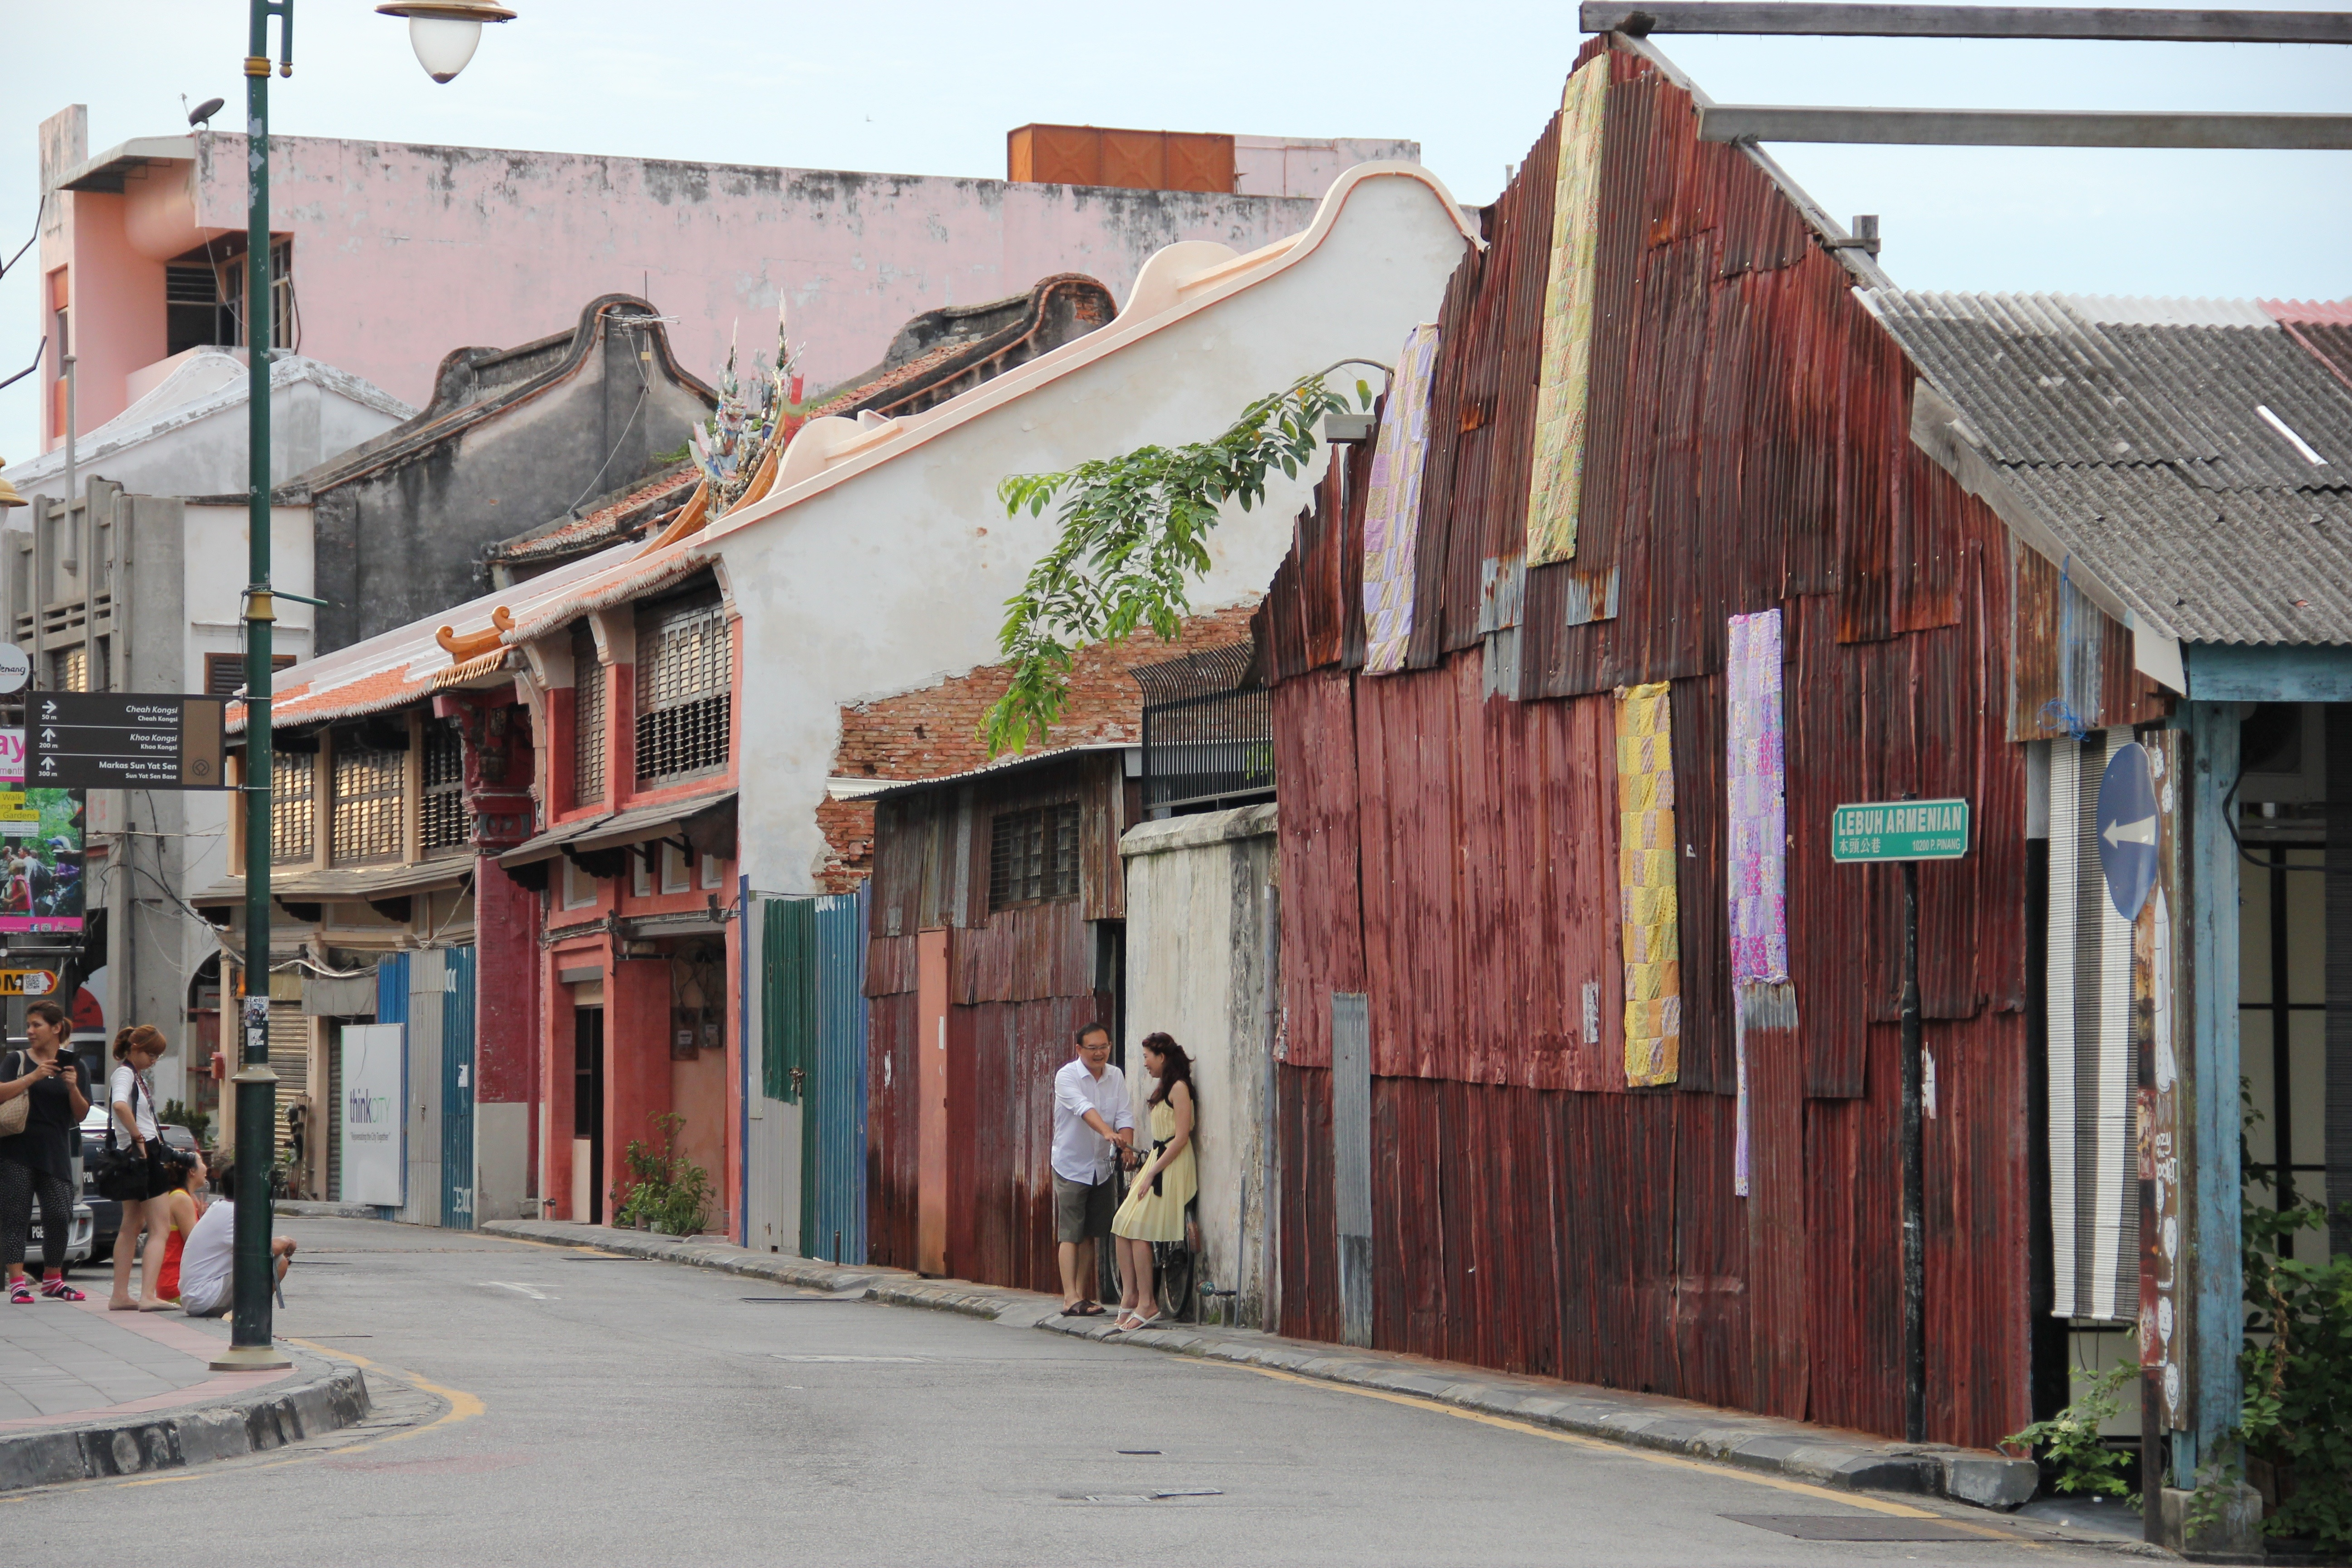 Street art in George Town - you have to line up for a photo!